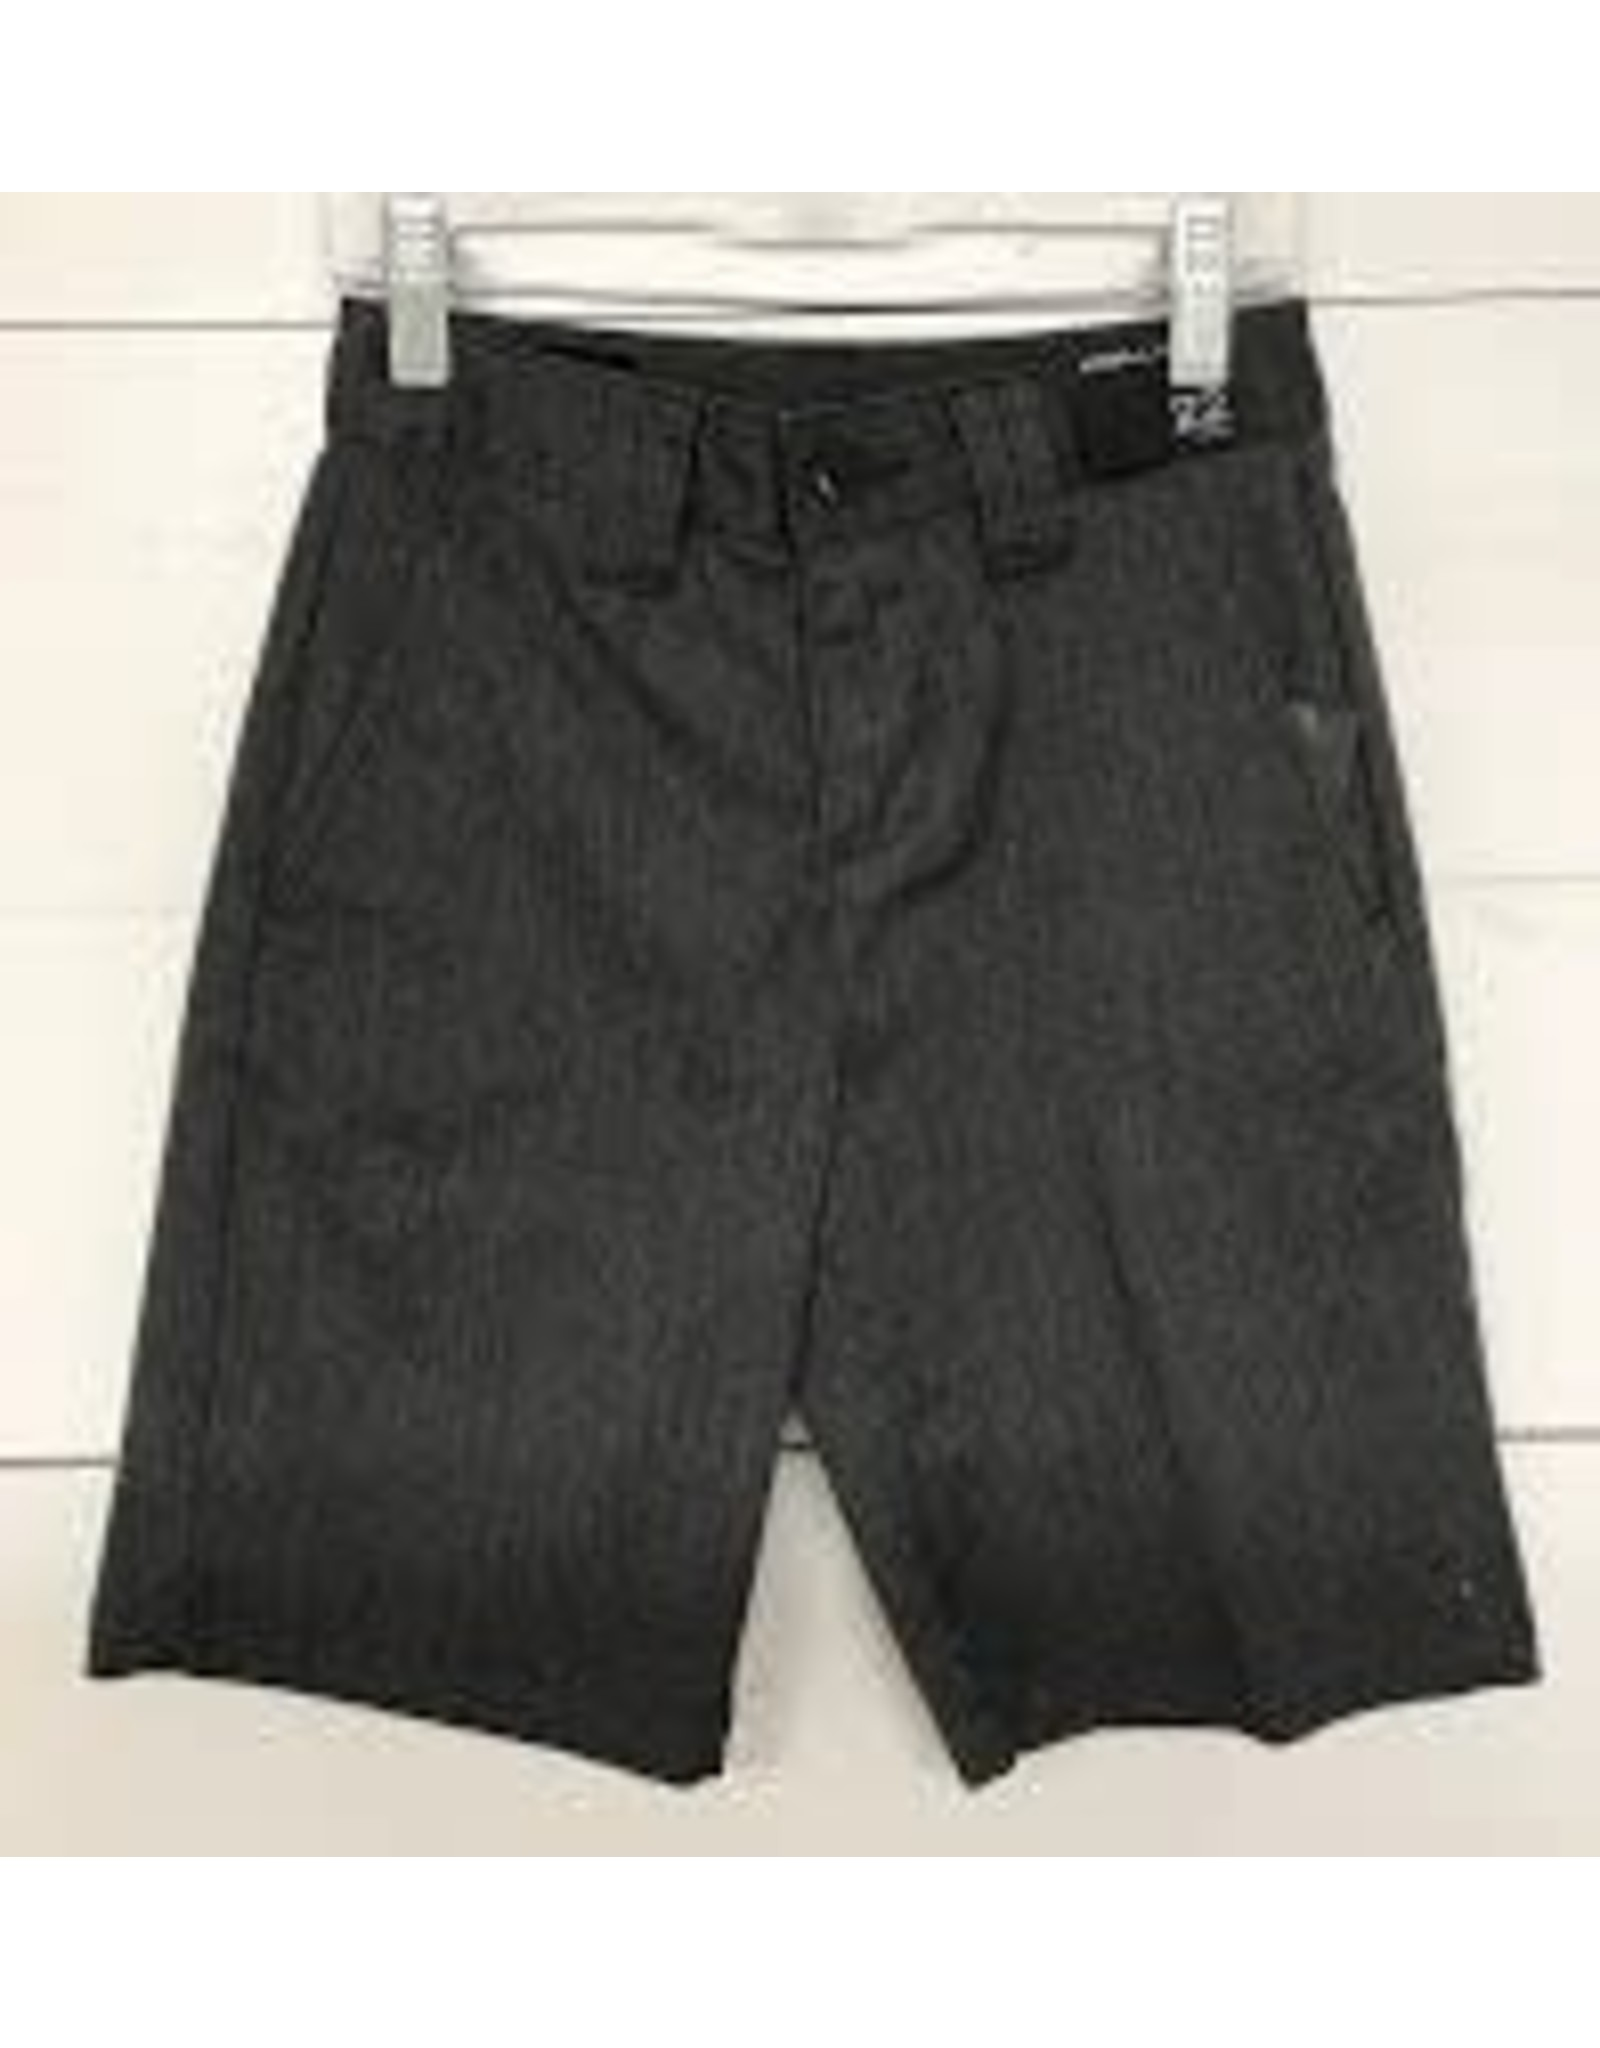 O'Neill Sportswear Contact Stretch Short- Dark Charcoal